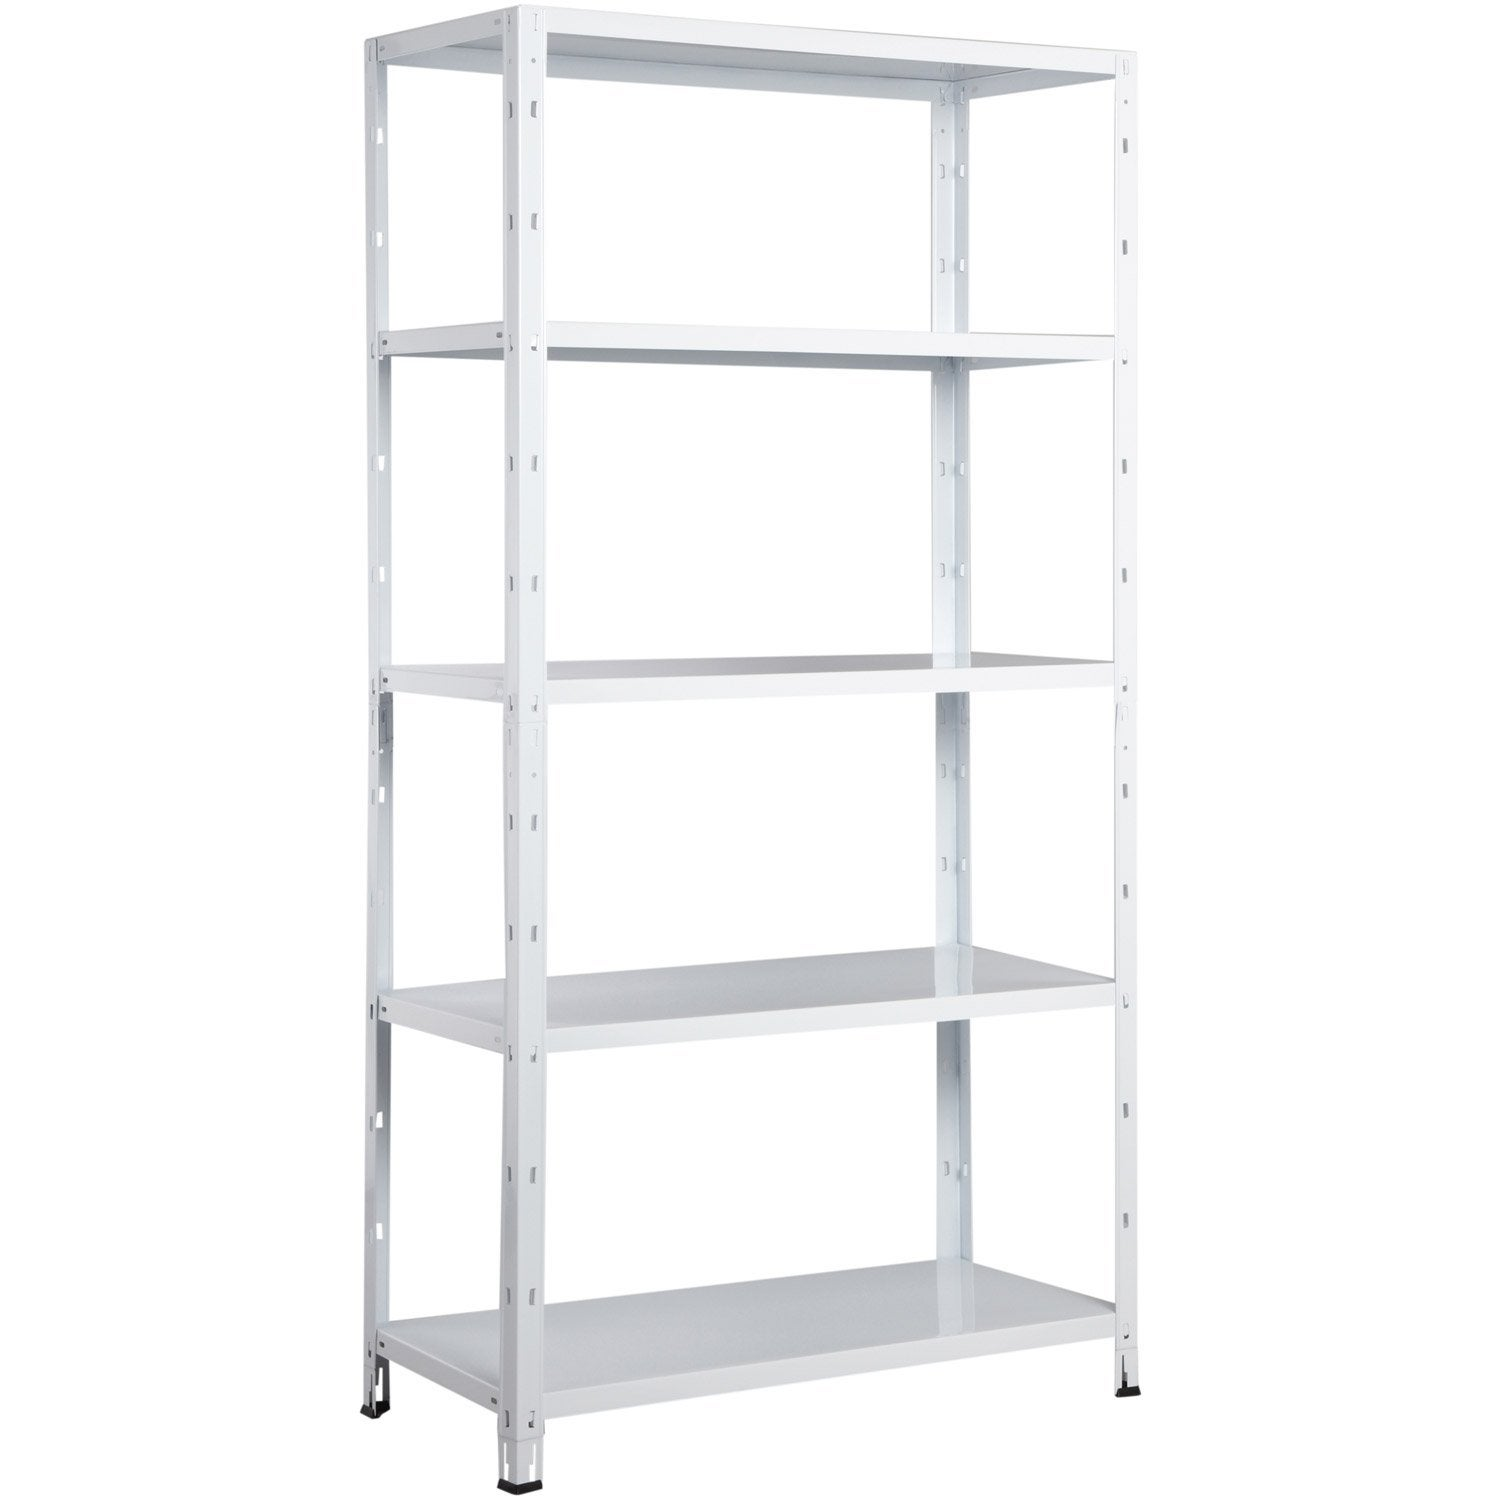 Etag re acier clicker 5 tablettes blanc x x p - Etagere metallique modulable ...